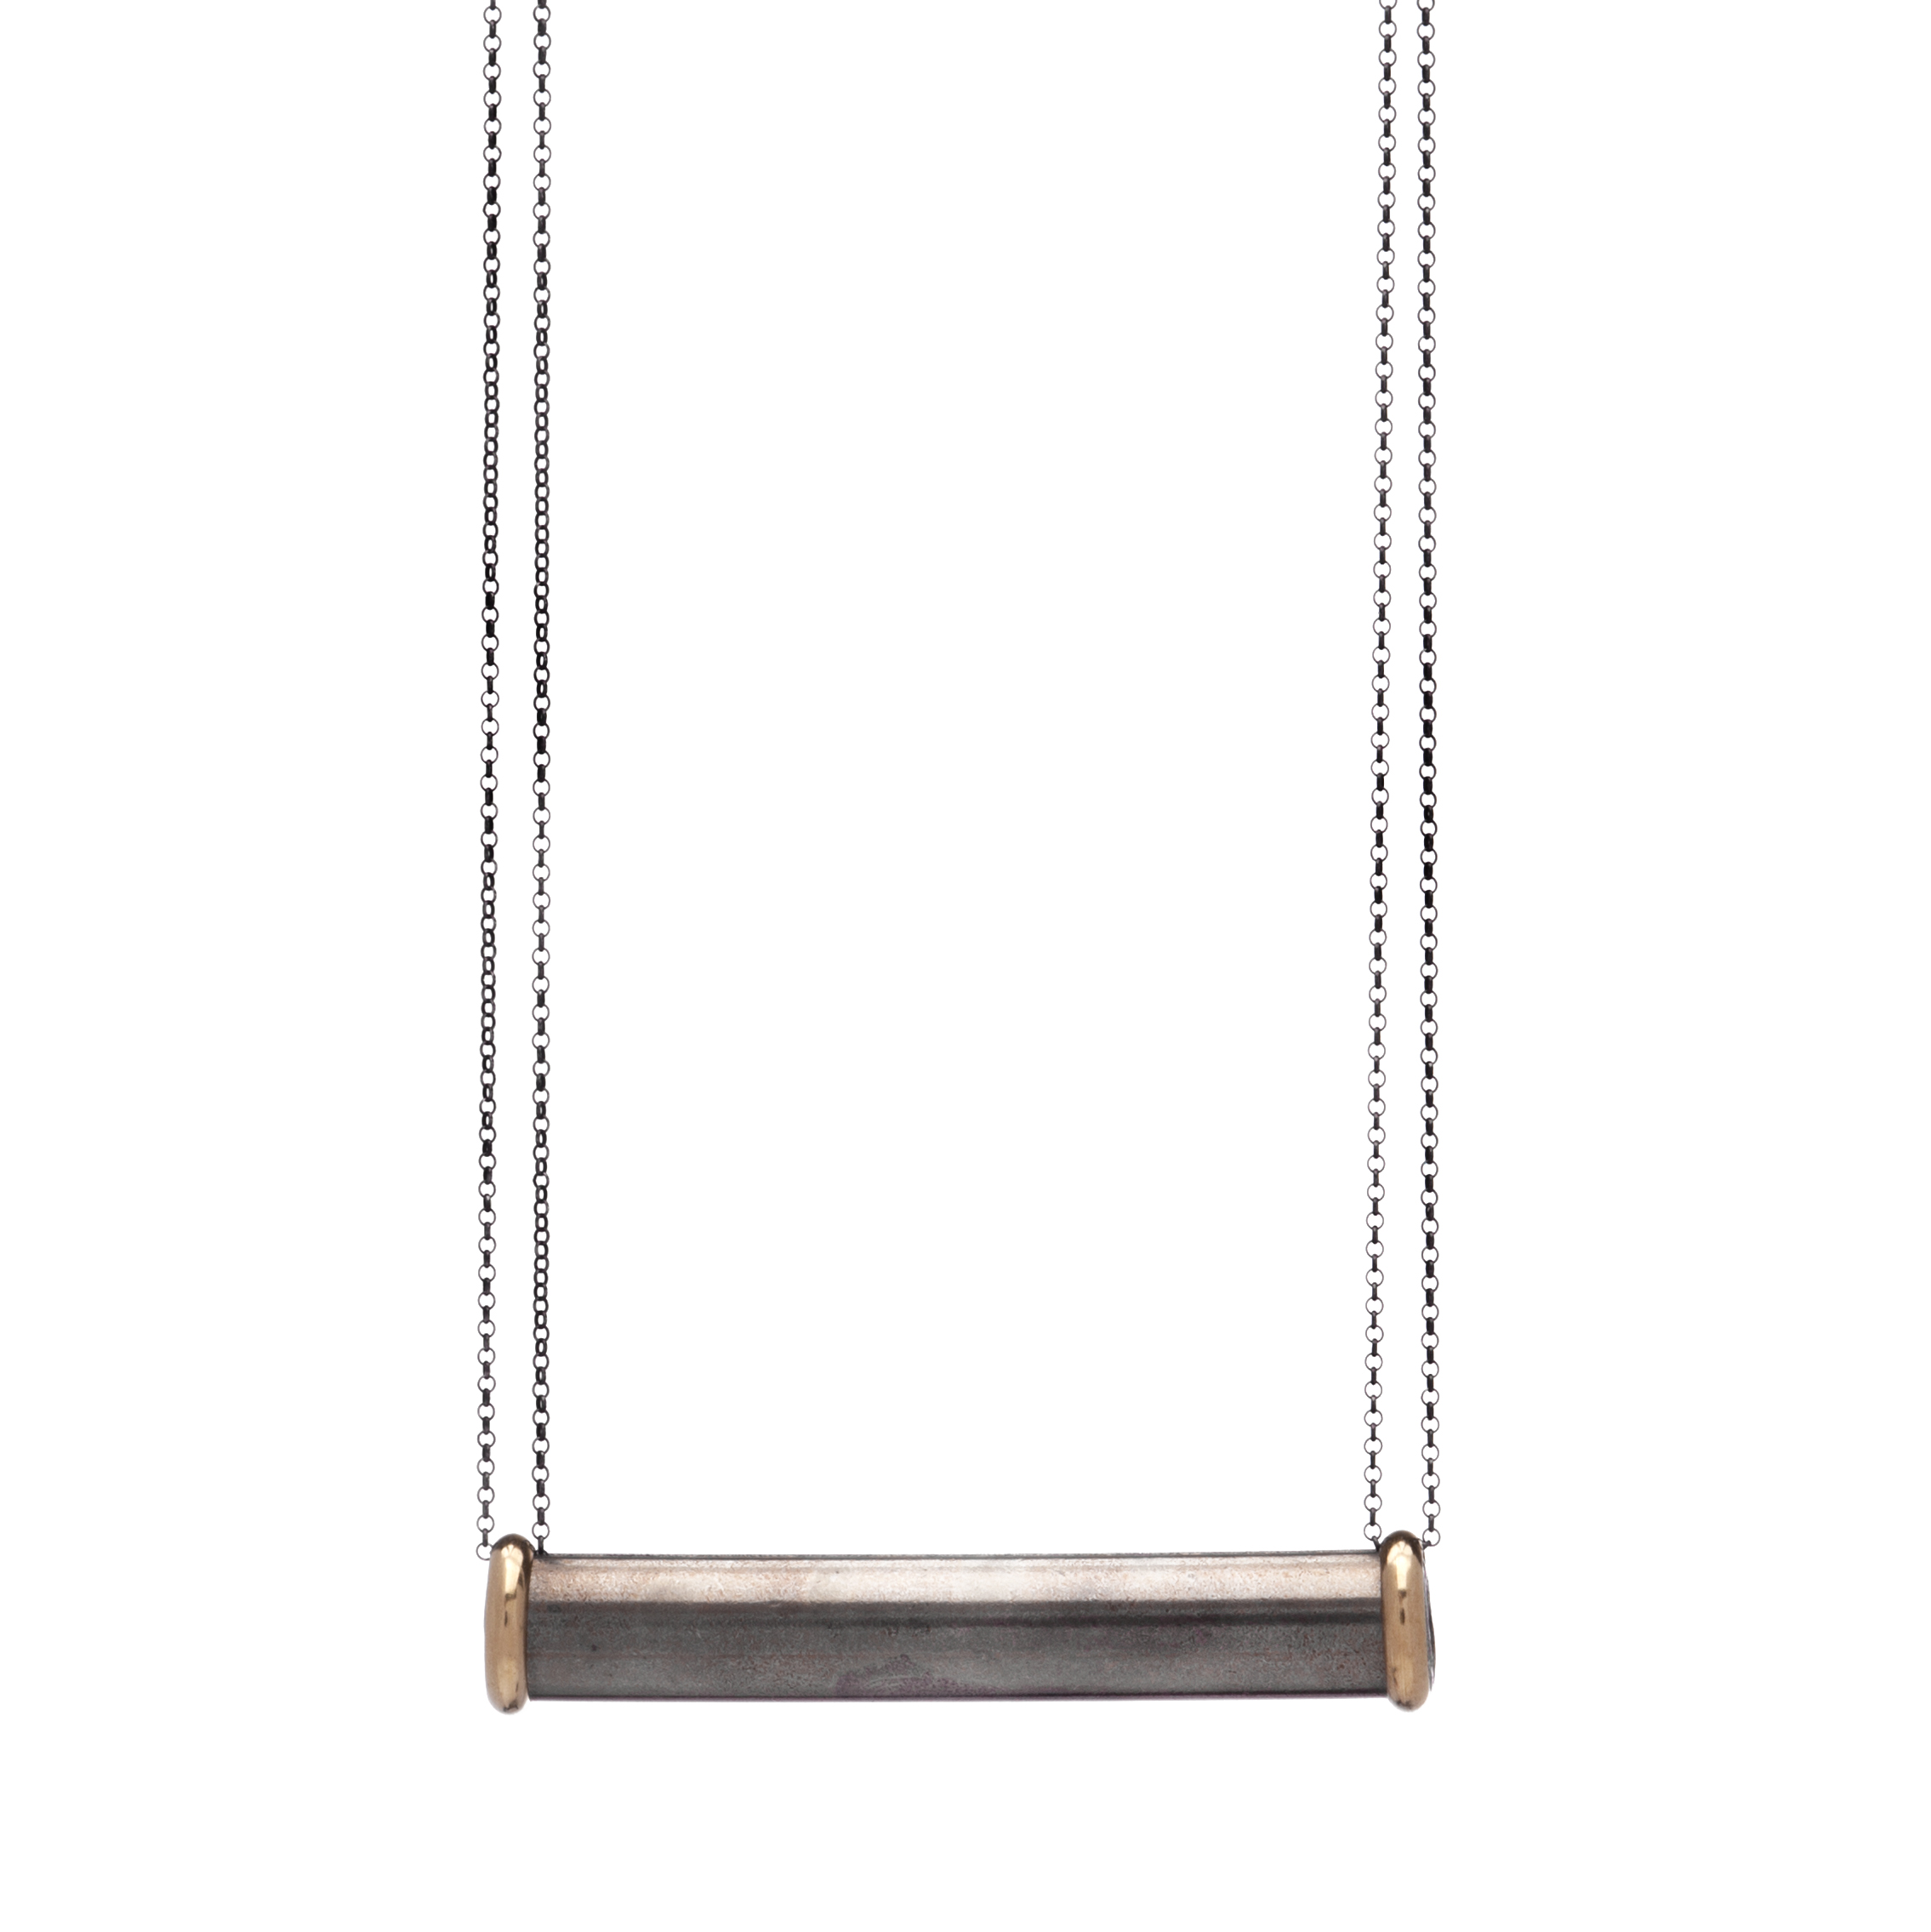 Rosy Brass Capped Lat Necklace $90  brass, oxidized sterling silver, steel